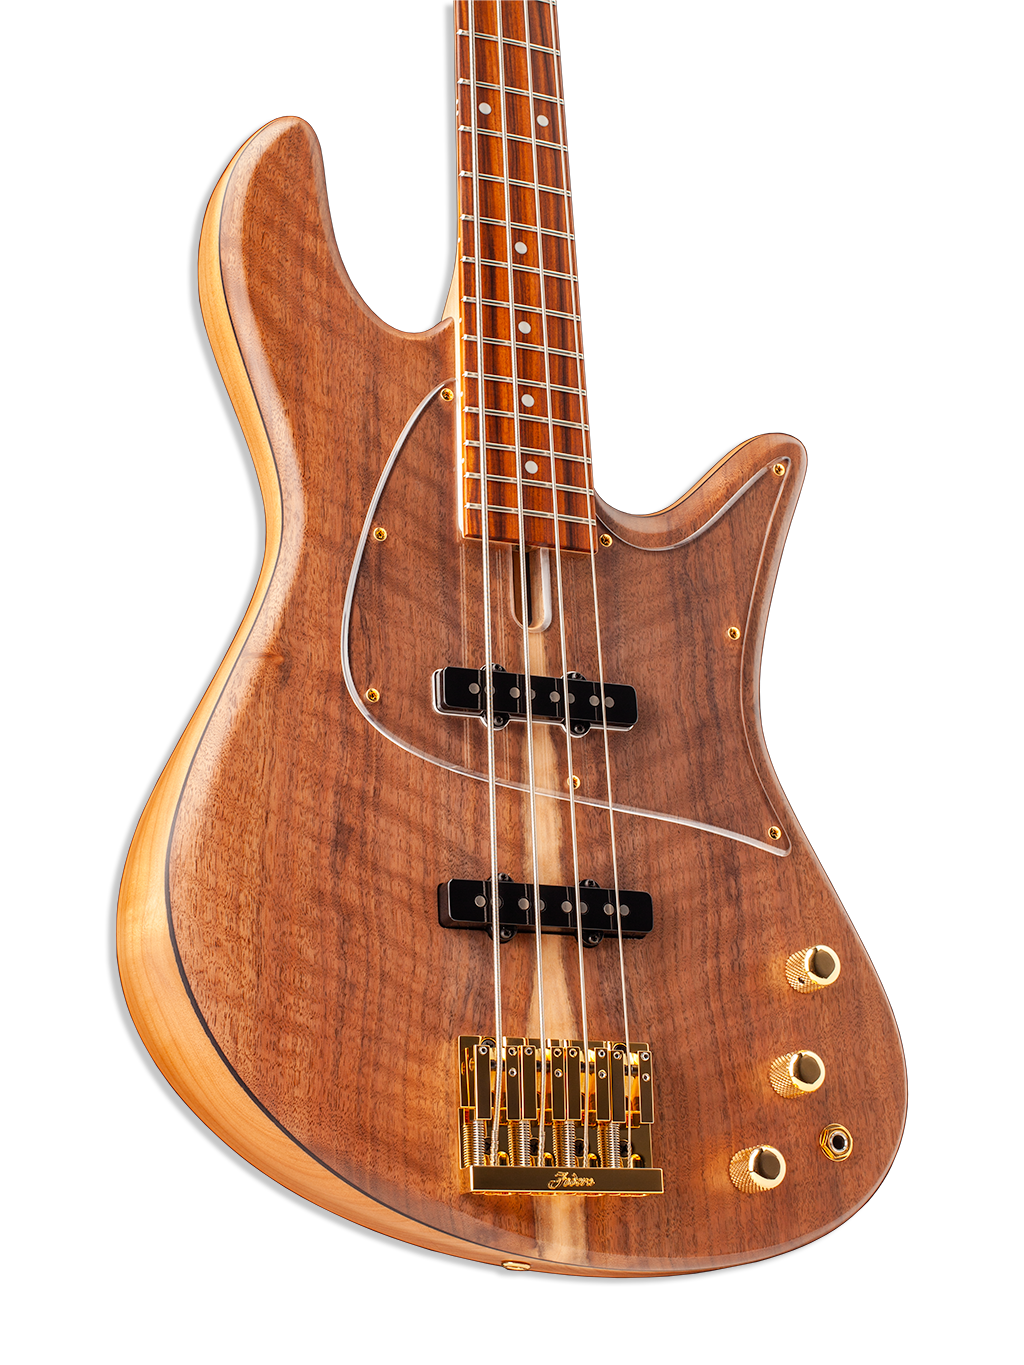 Flame Walnut Emperor J Standard Special Bass Guitar Body